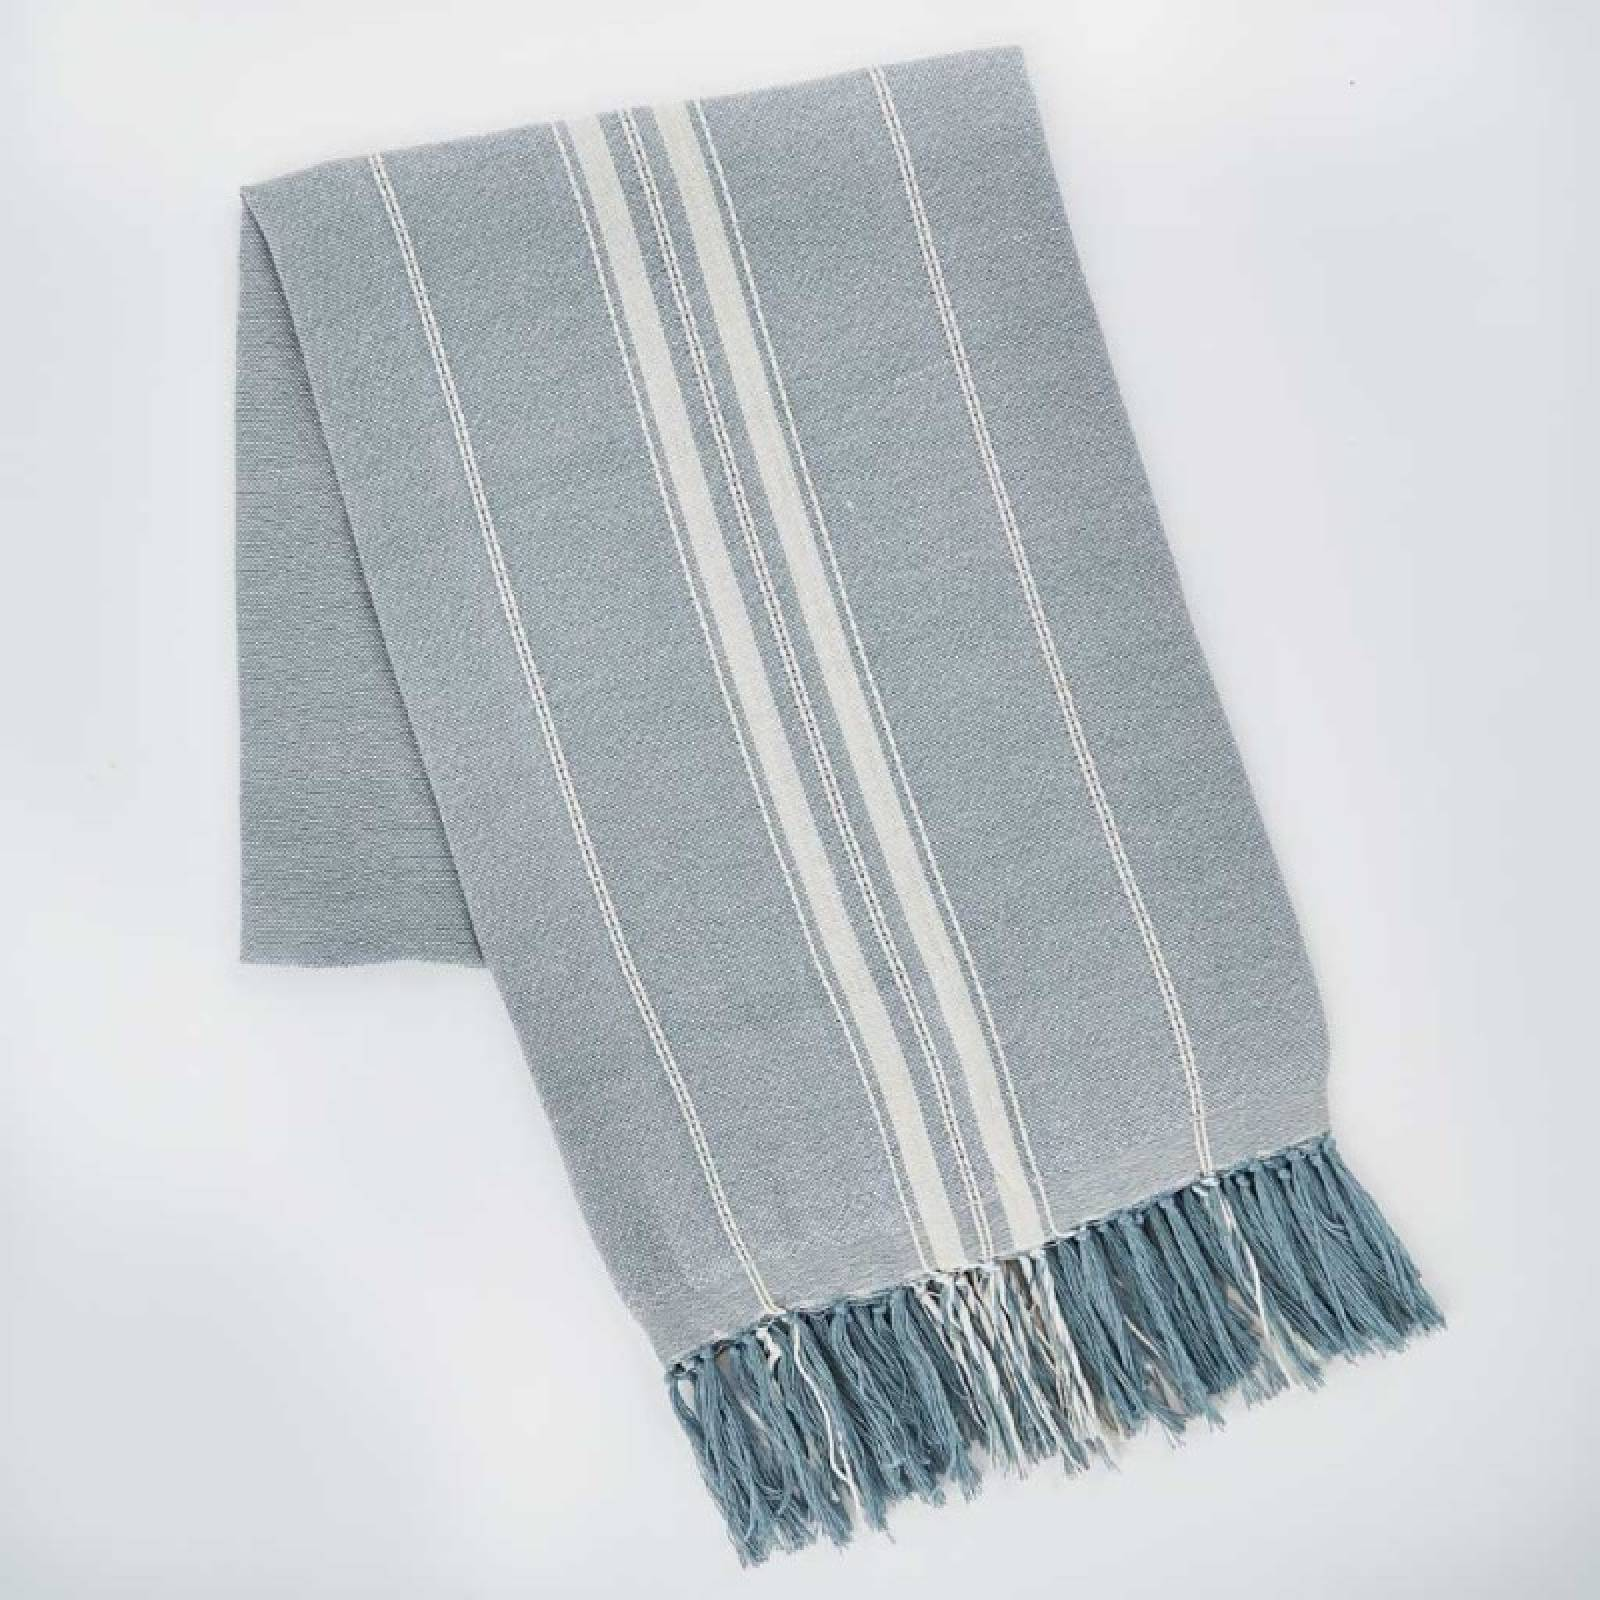 Marseille Throw In Duck Egg Blue Made From Recycled Bottles